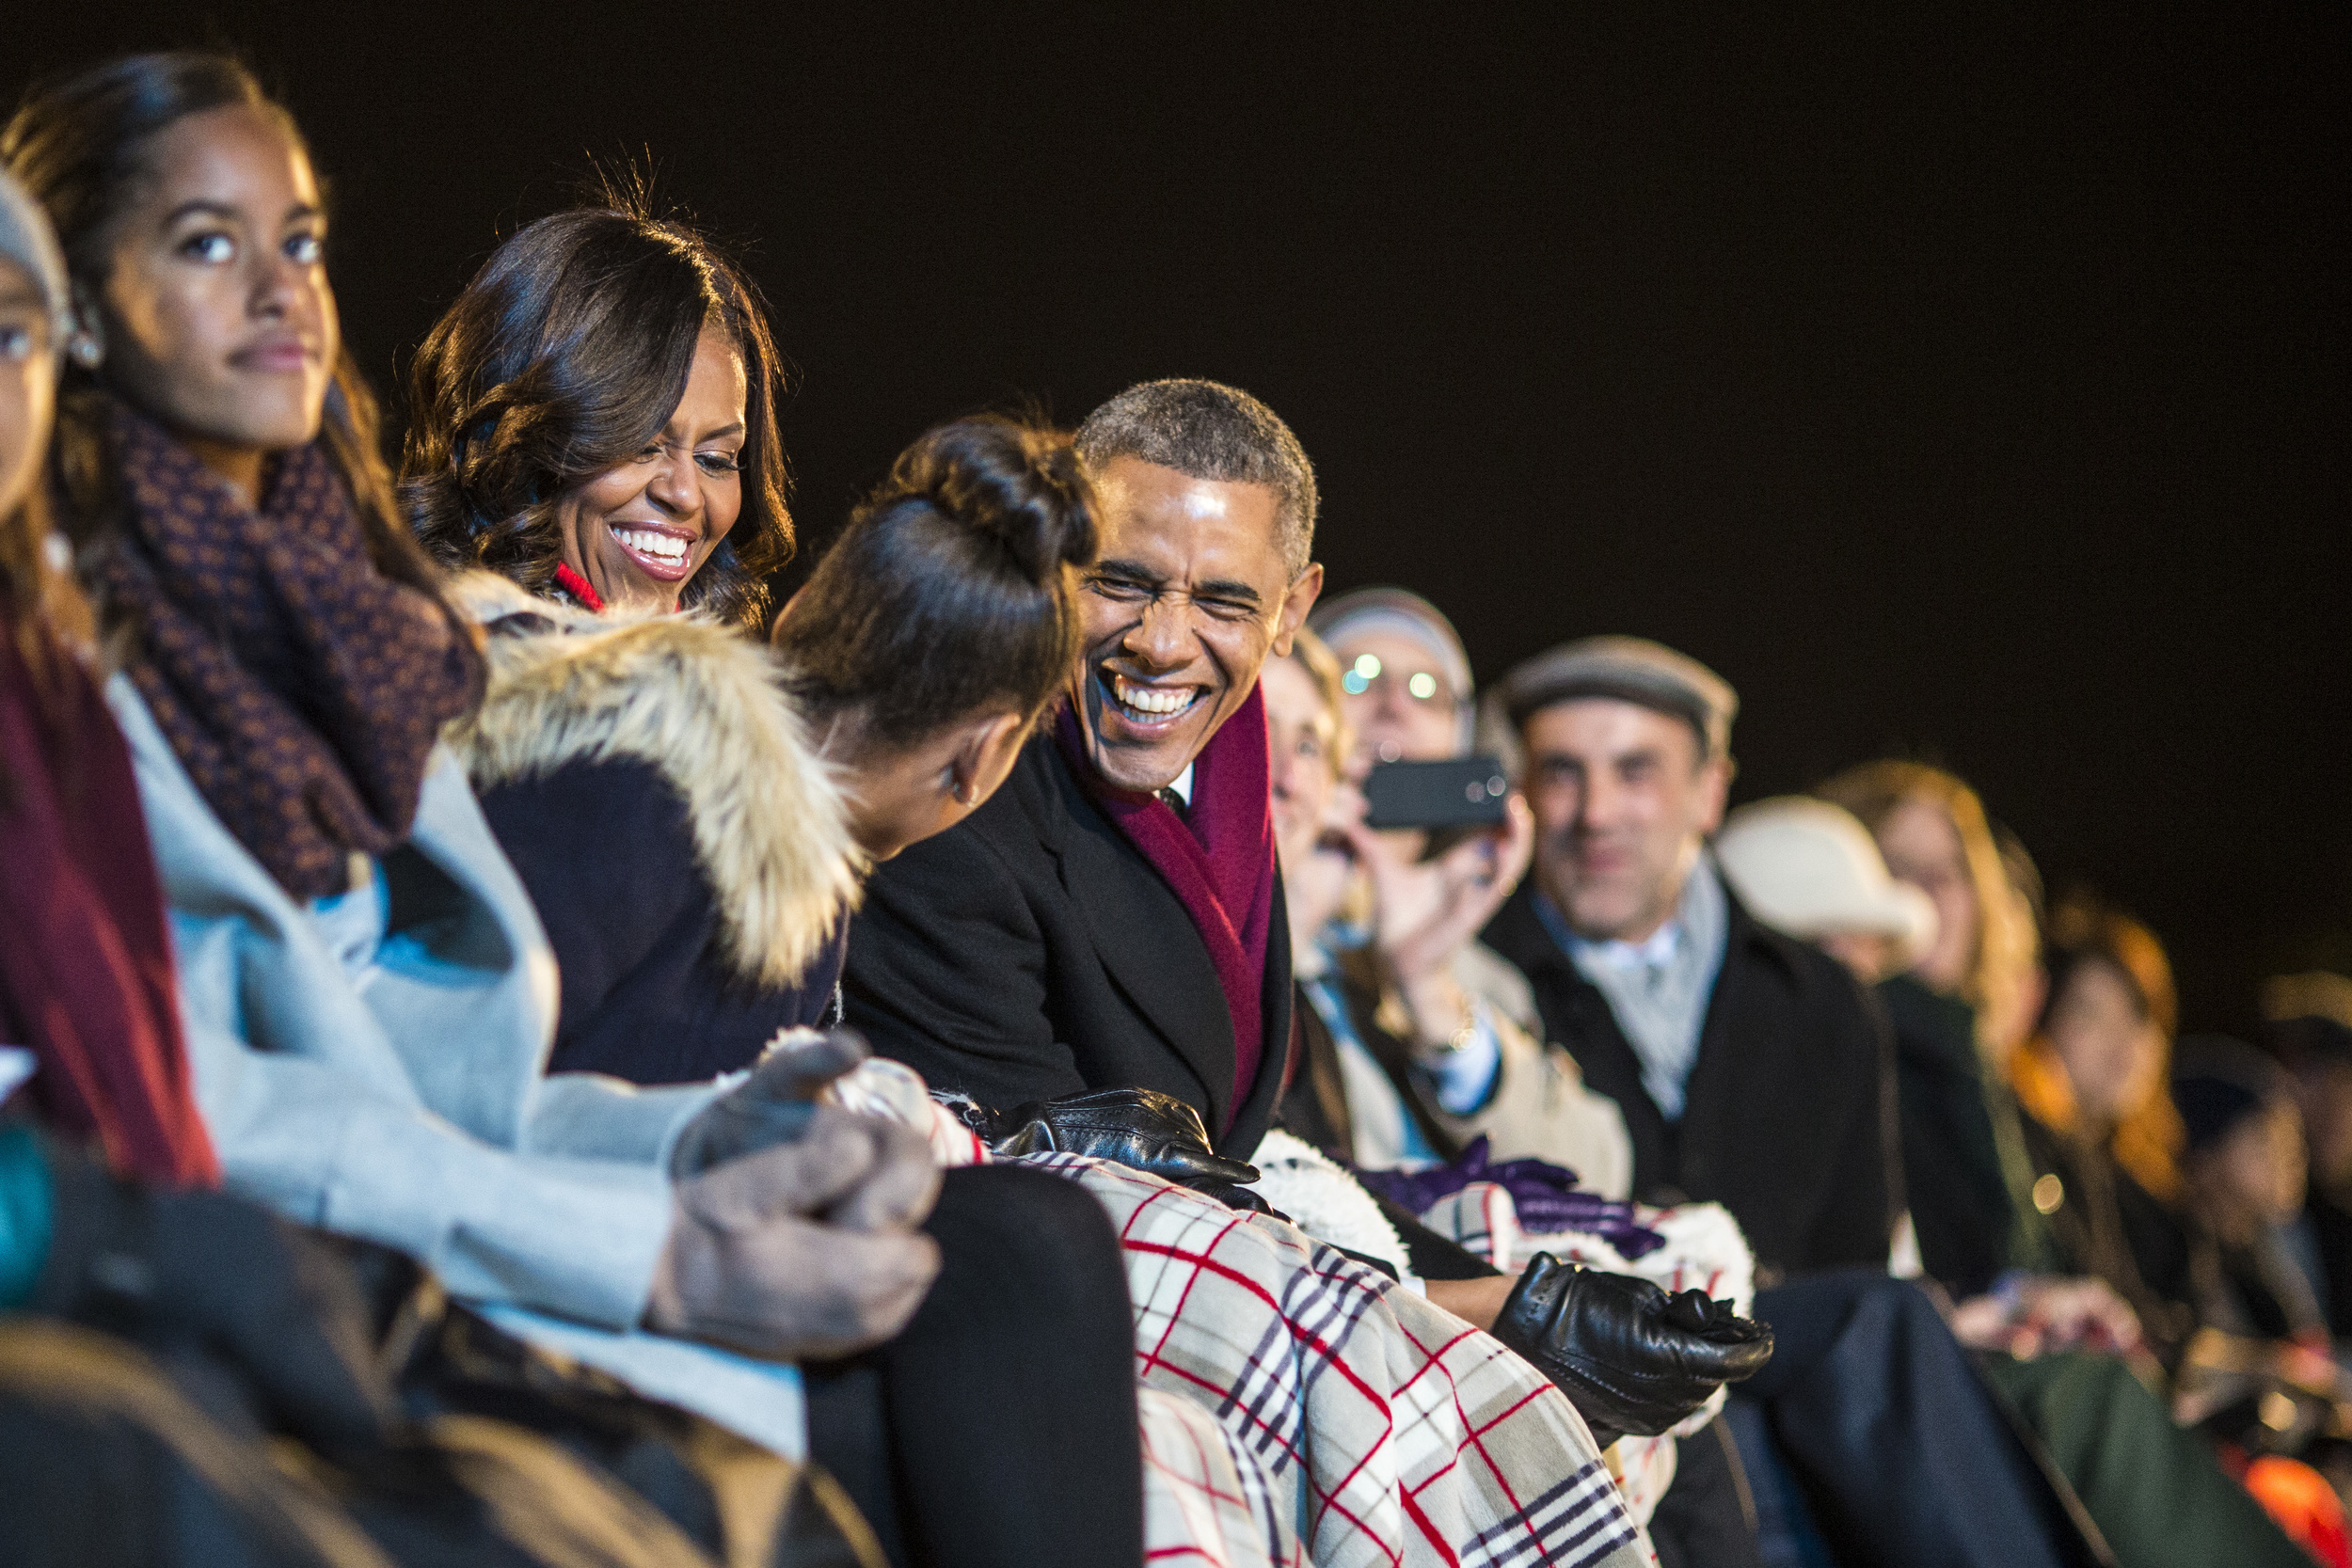 President Barack Obama, first lady Michelle Obama, and their daughters Sasha, second from left, and Malia, left, listen to performances during the National Christmas Tree Lighting ceremony at the Ellipse in Washington, DC on Thursday December 04, 2014.